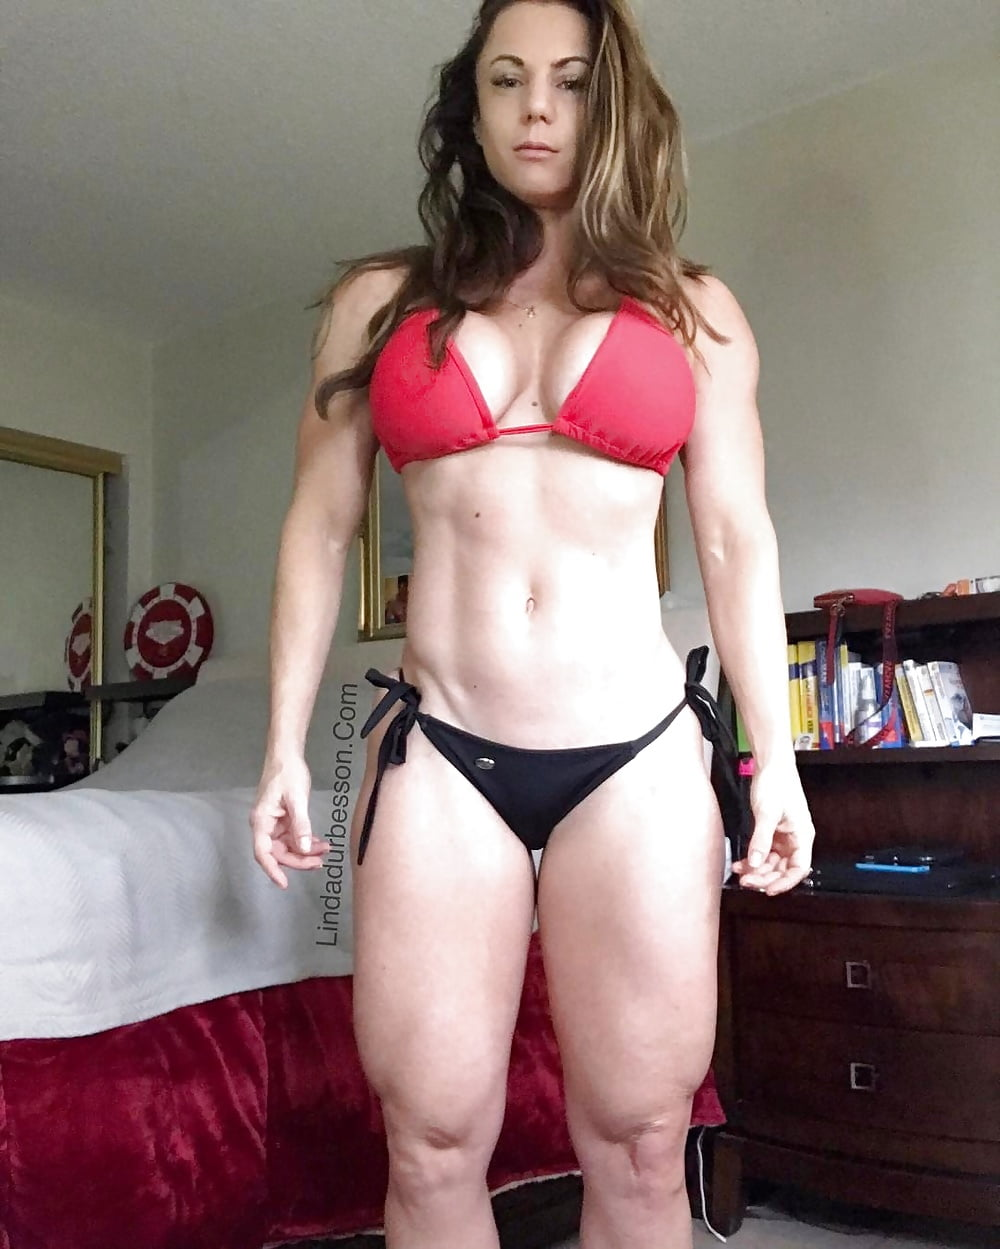 Muscle Women Porn see and save as sexy fitness muscle women porn pict - 4crot